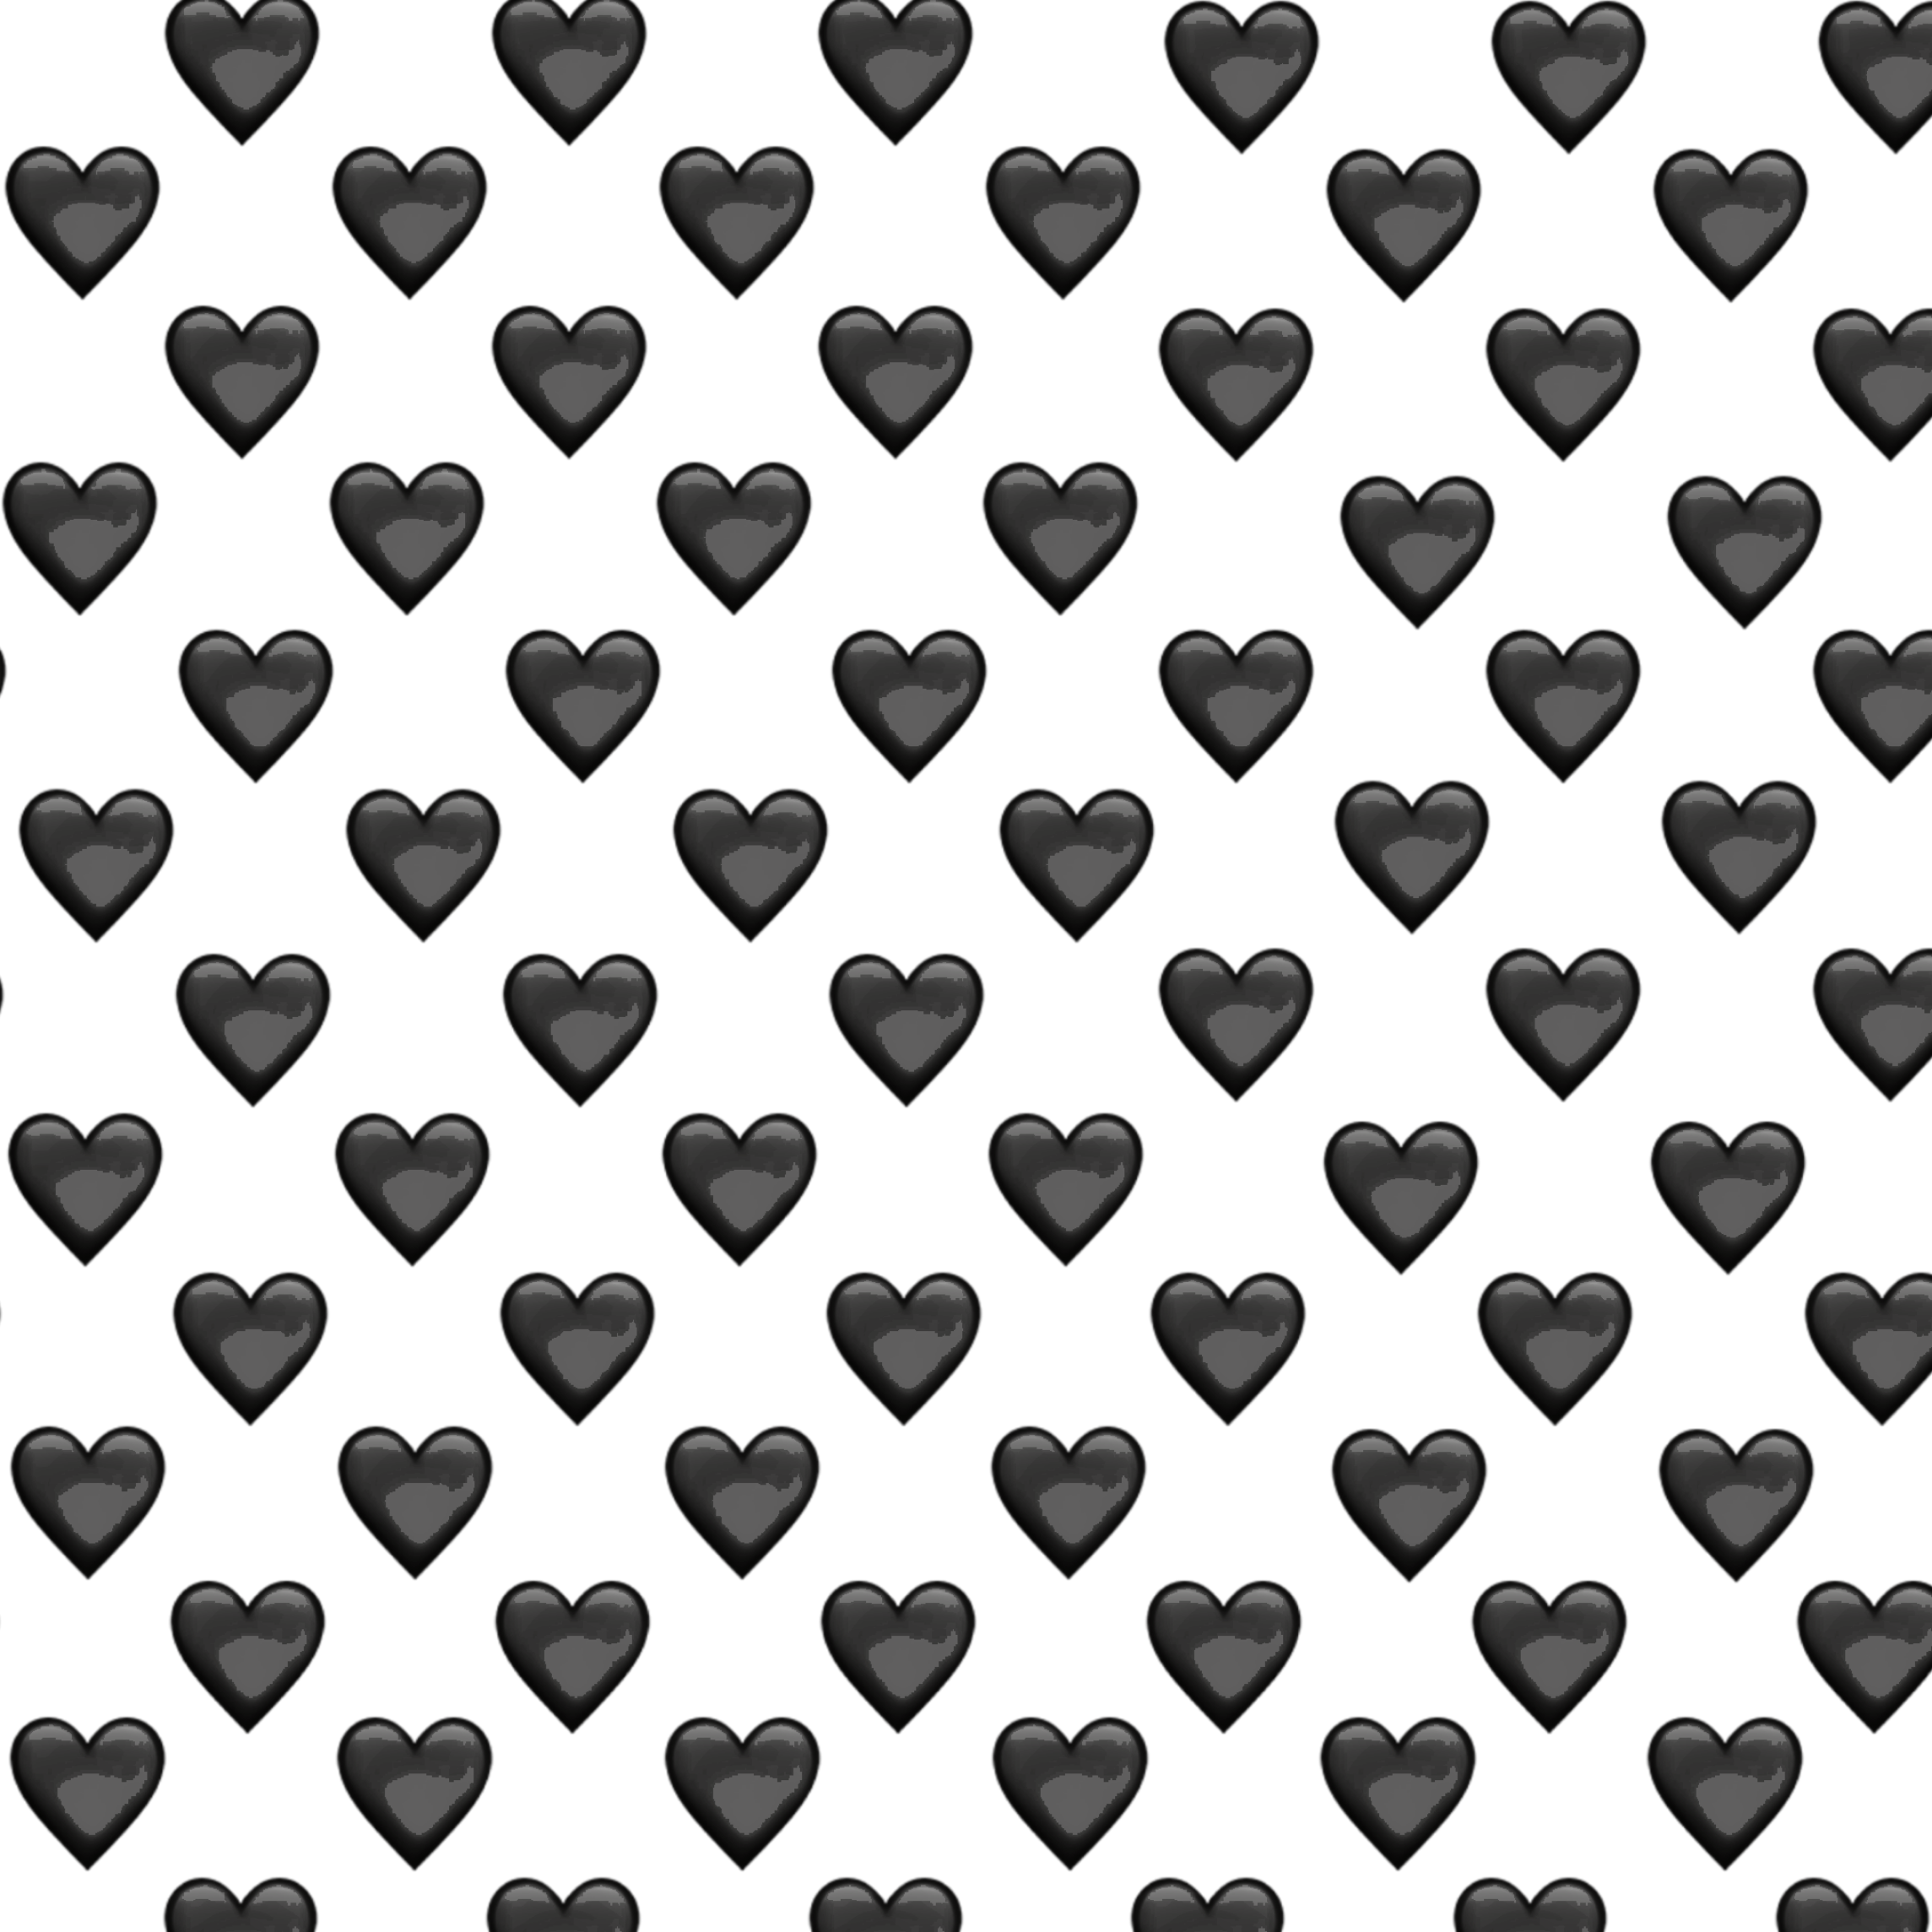 Wallpaper Black Heart Emoji